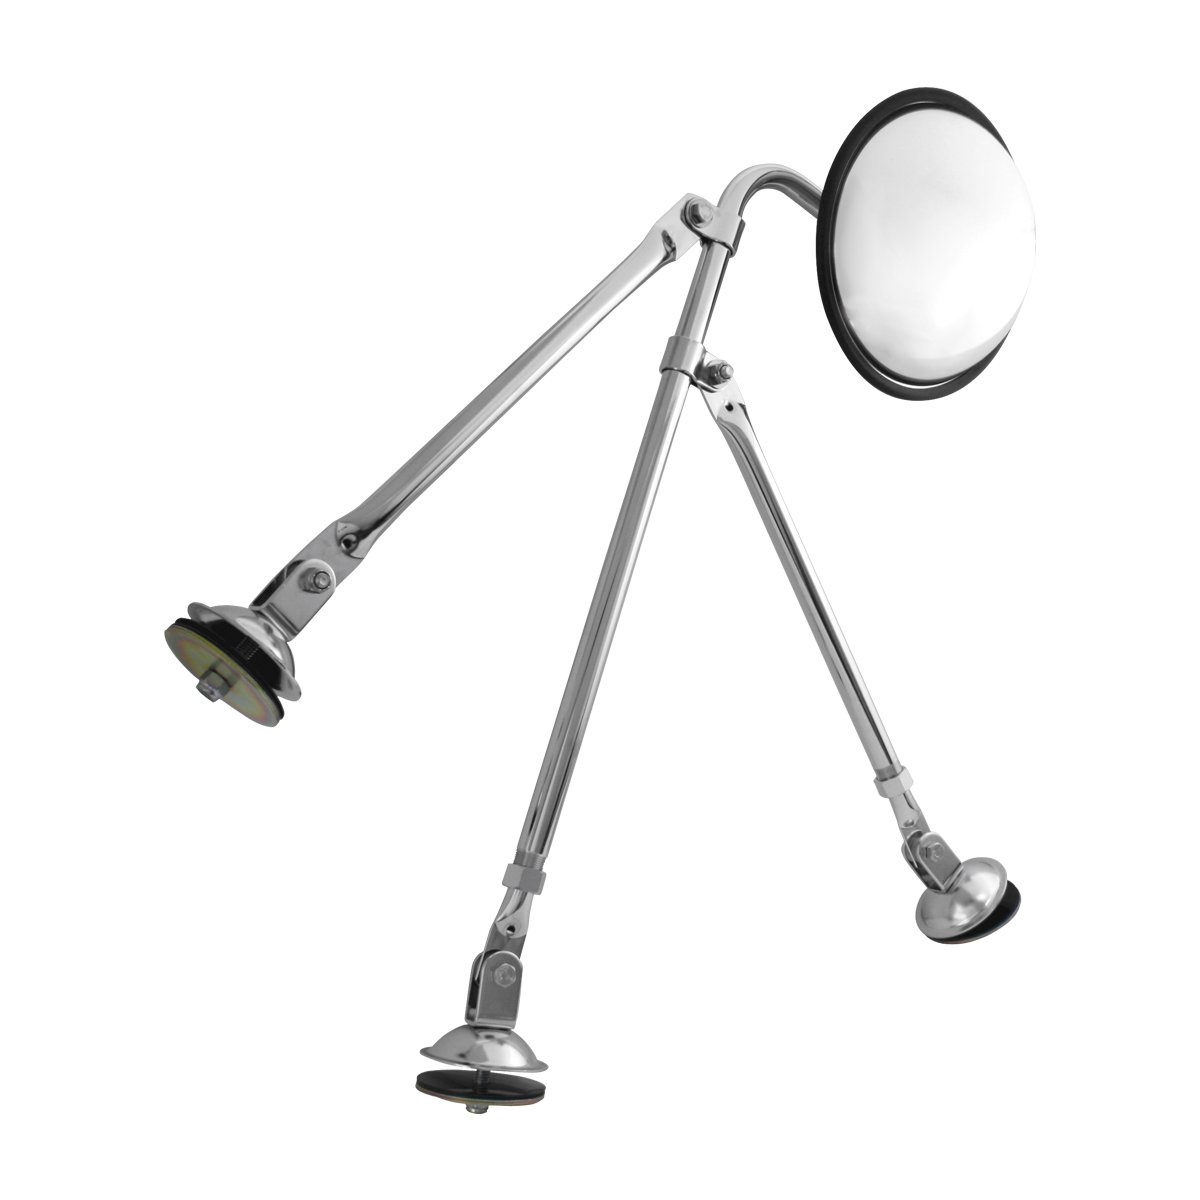 """Utility Vehicles and More GG Grand General Grand General 33324 Chrome Tripod Fender Mount 8.5/"""" Convex Mirror Set for Trucks Buses"""